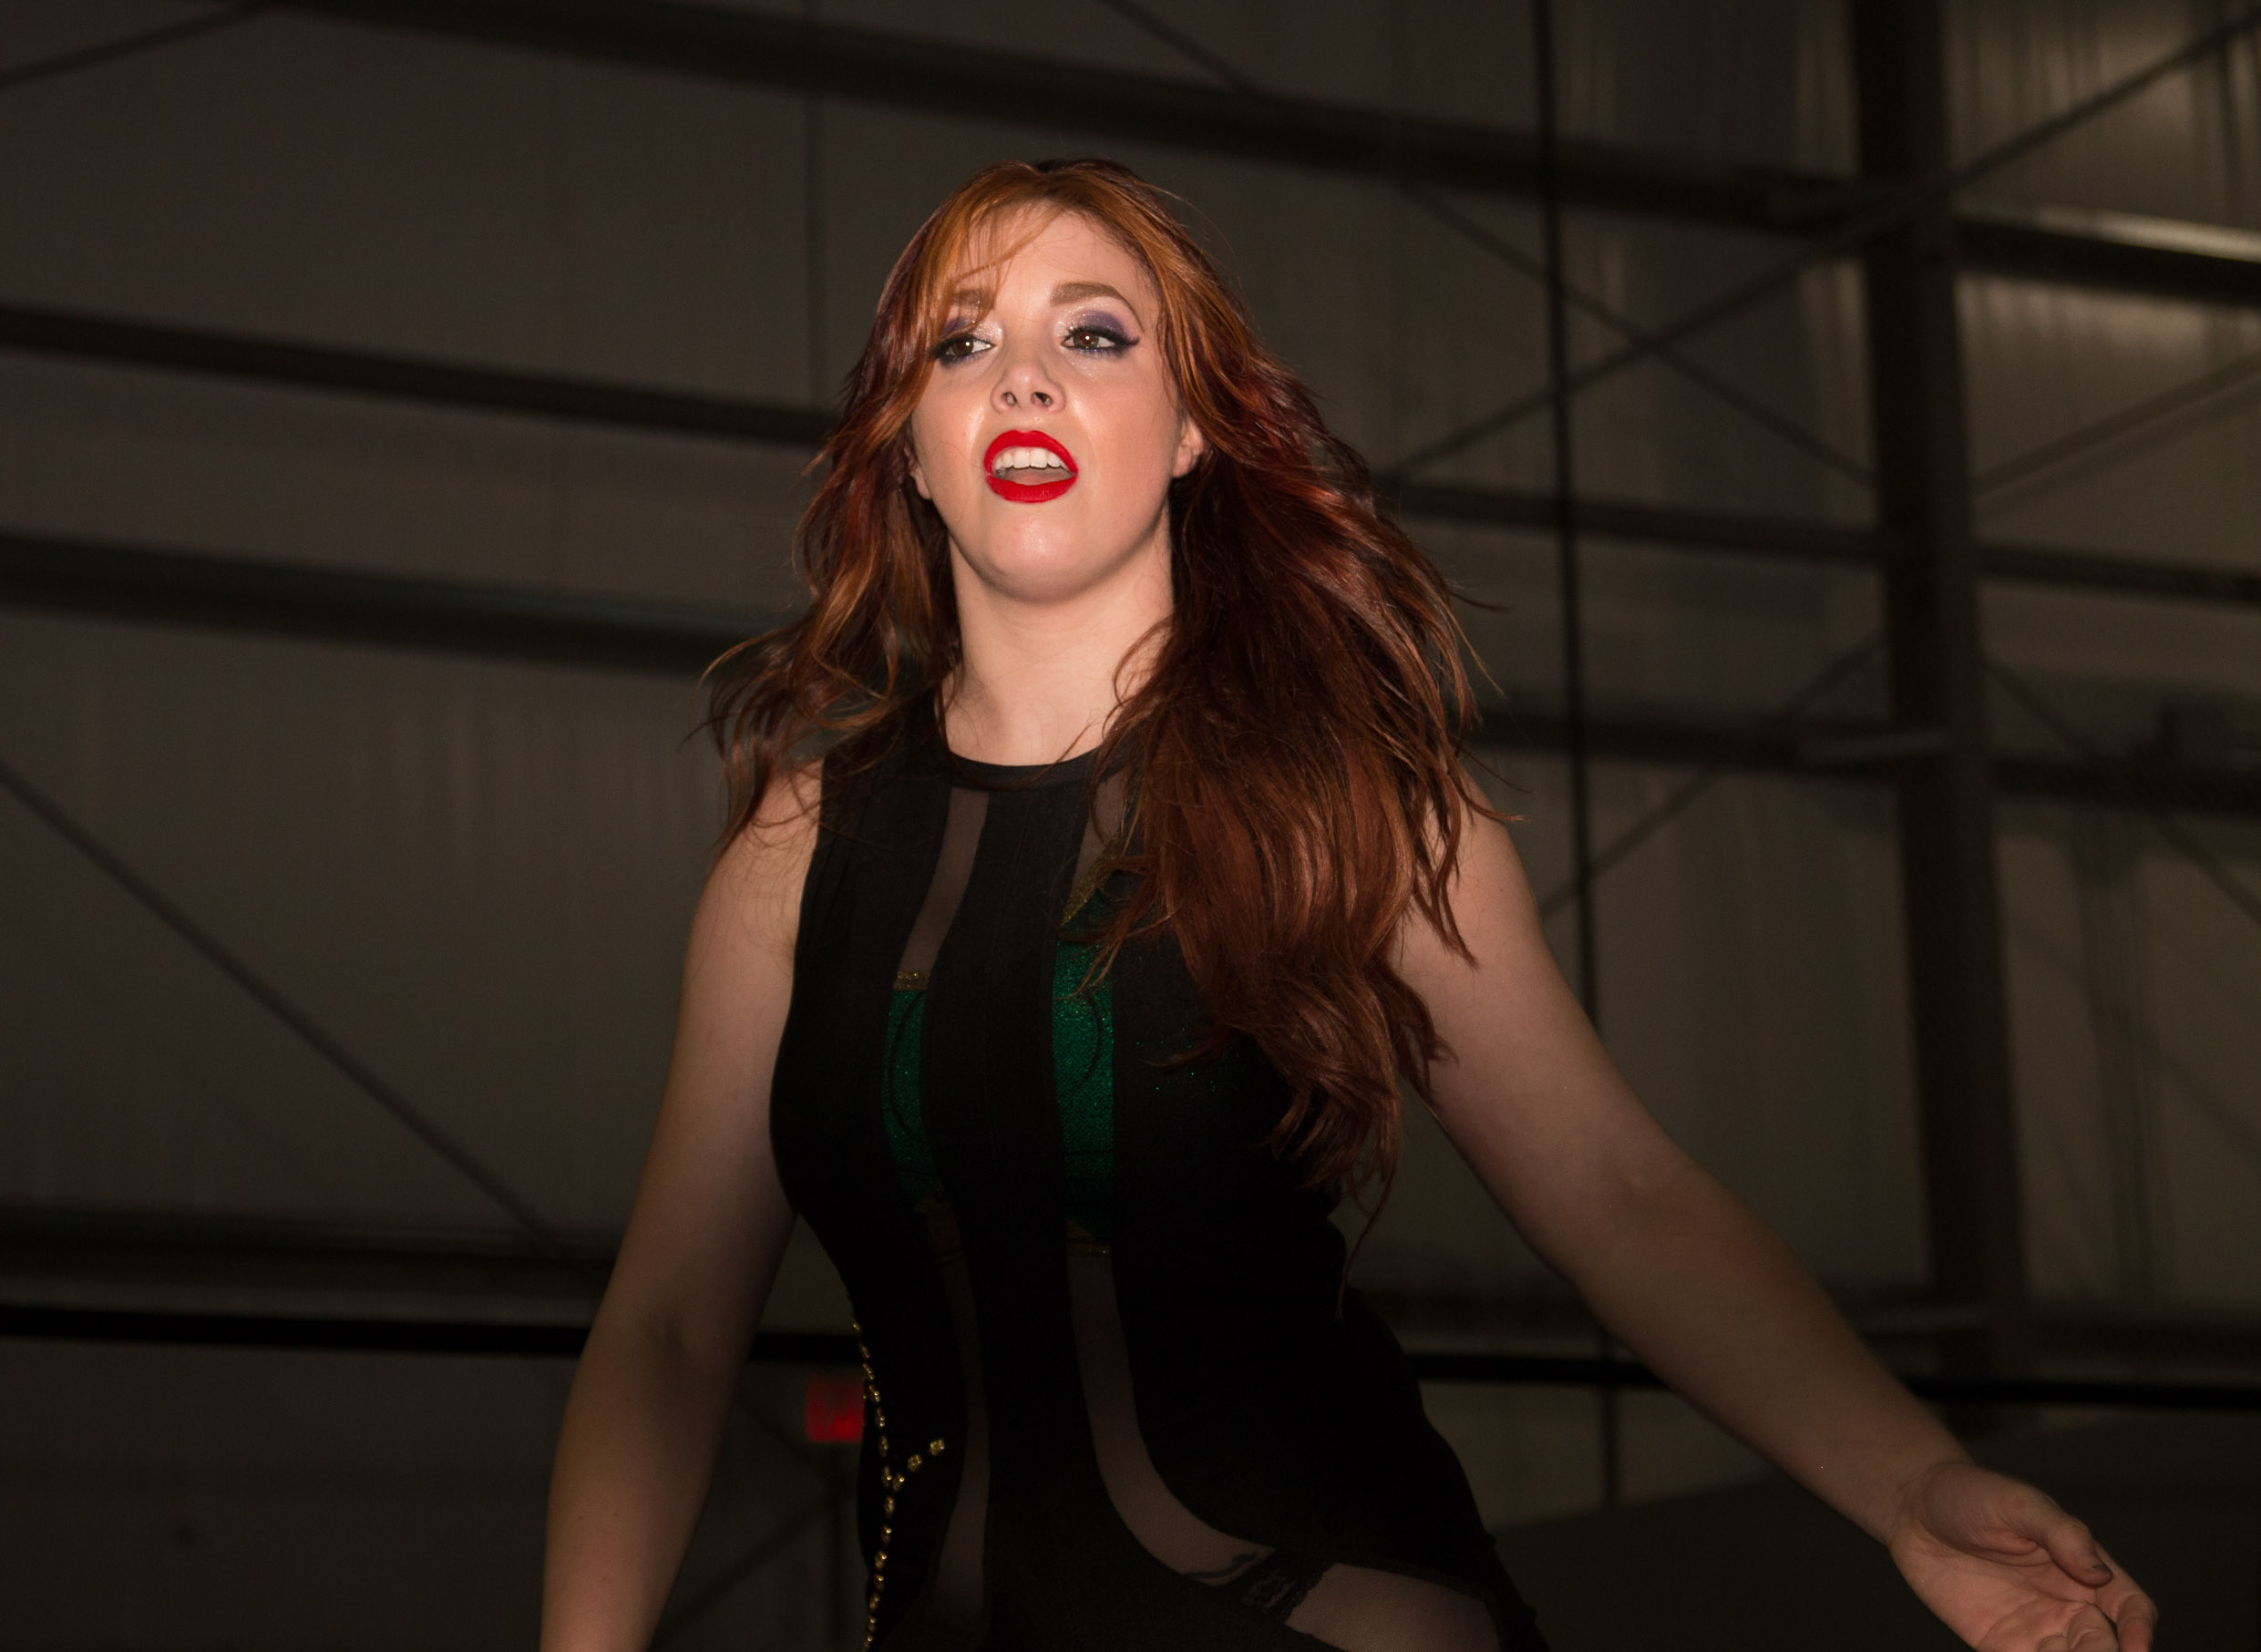 File:Taeler Hendrix Smash 2014.jpg - Wikimedia Commons